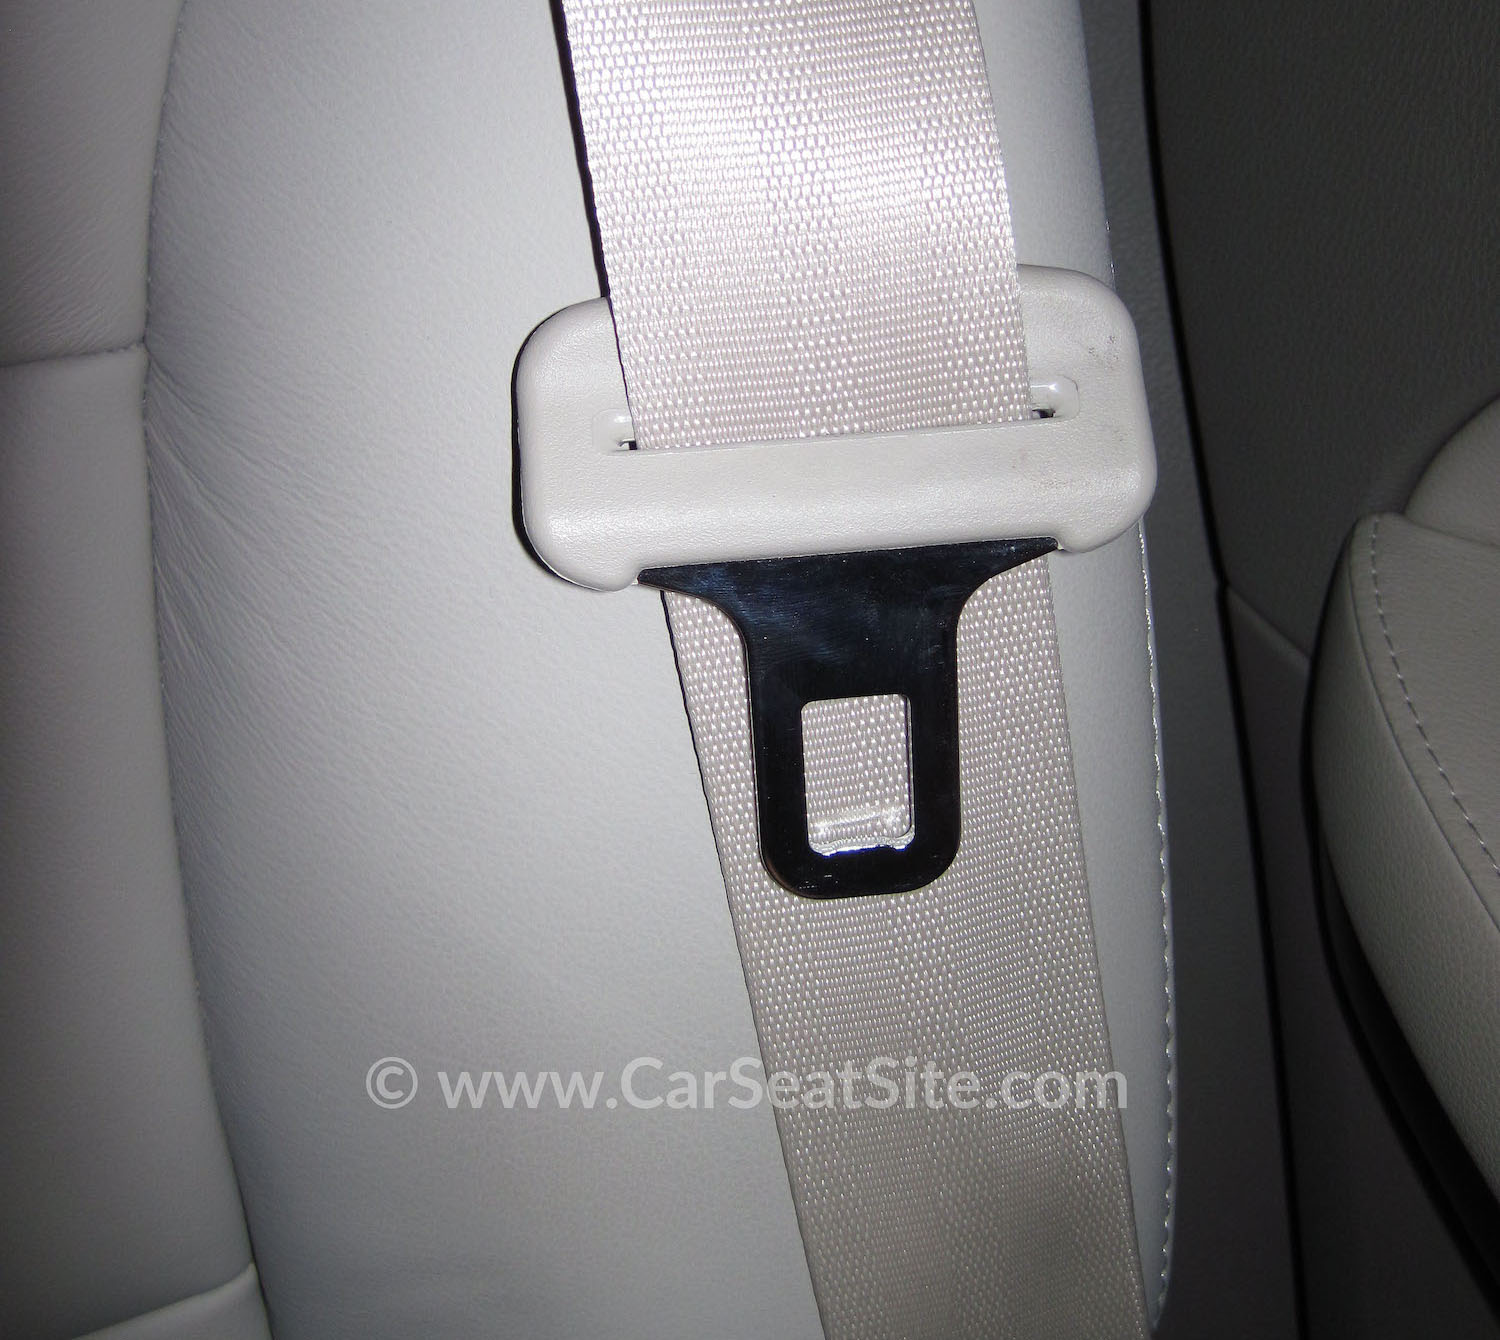 Locking Clip The Metal H Shaped That Comes With Some Carseats It Is Used To Keep Lap Portion Of A Shoulder Belt Tight On Carseat